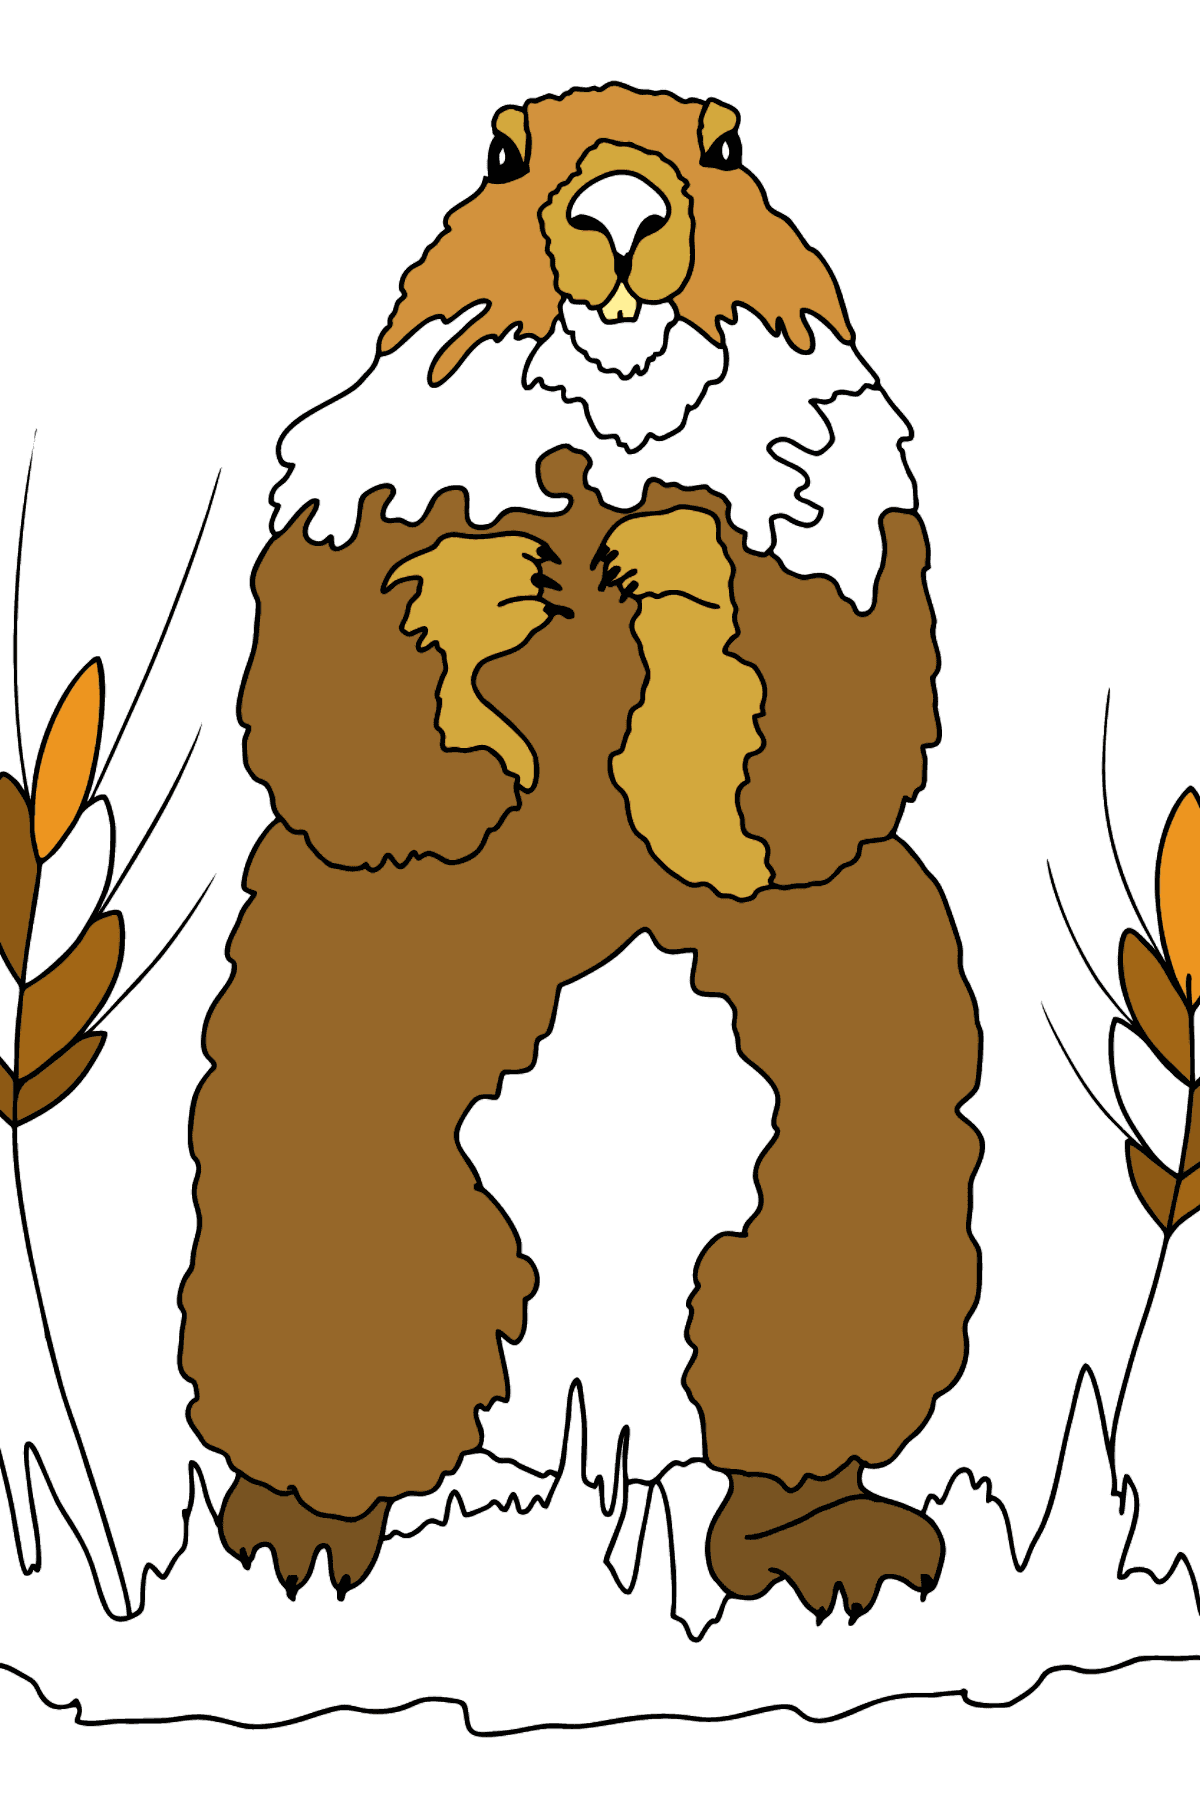 Coloring Page - A Groundhog is Looking out of Its Burrow - Coloring Pages for Kids